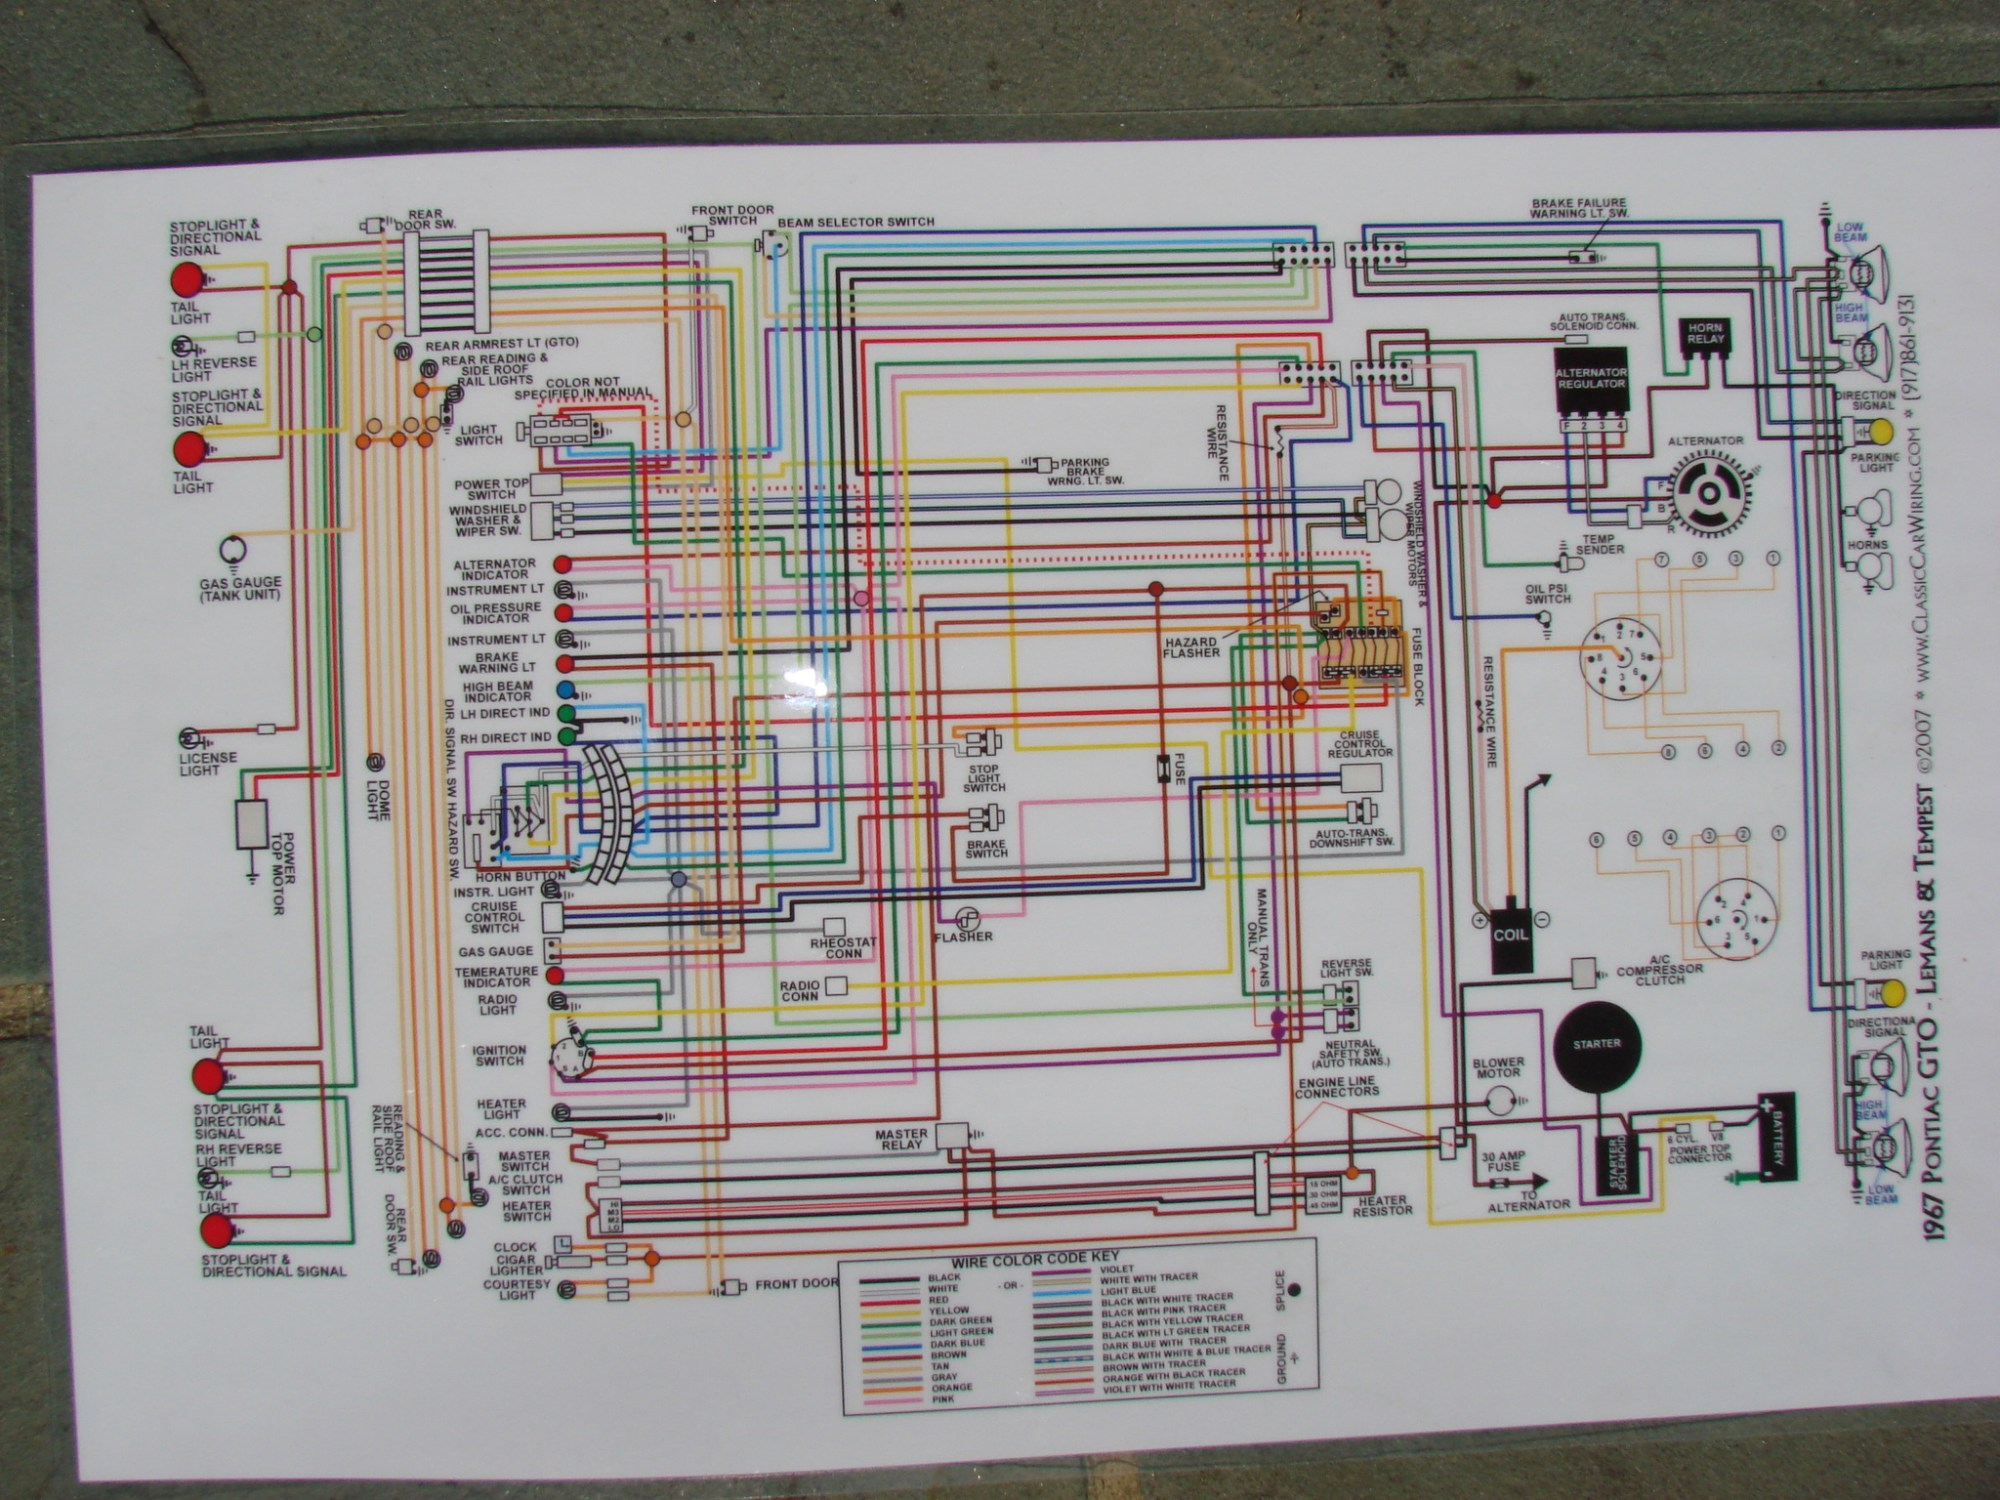 hight resolution of 1967 pontiac alternator wiring diagram wiring diagrams sapp 1967 pontiac firebird wiring diagram 1967 pontiac alternator